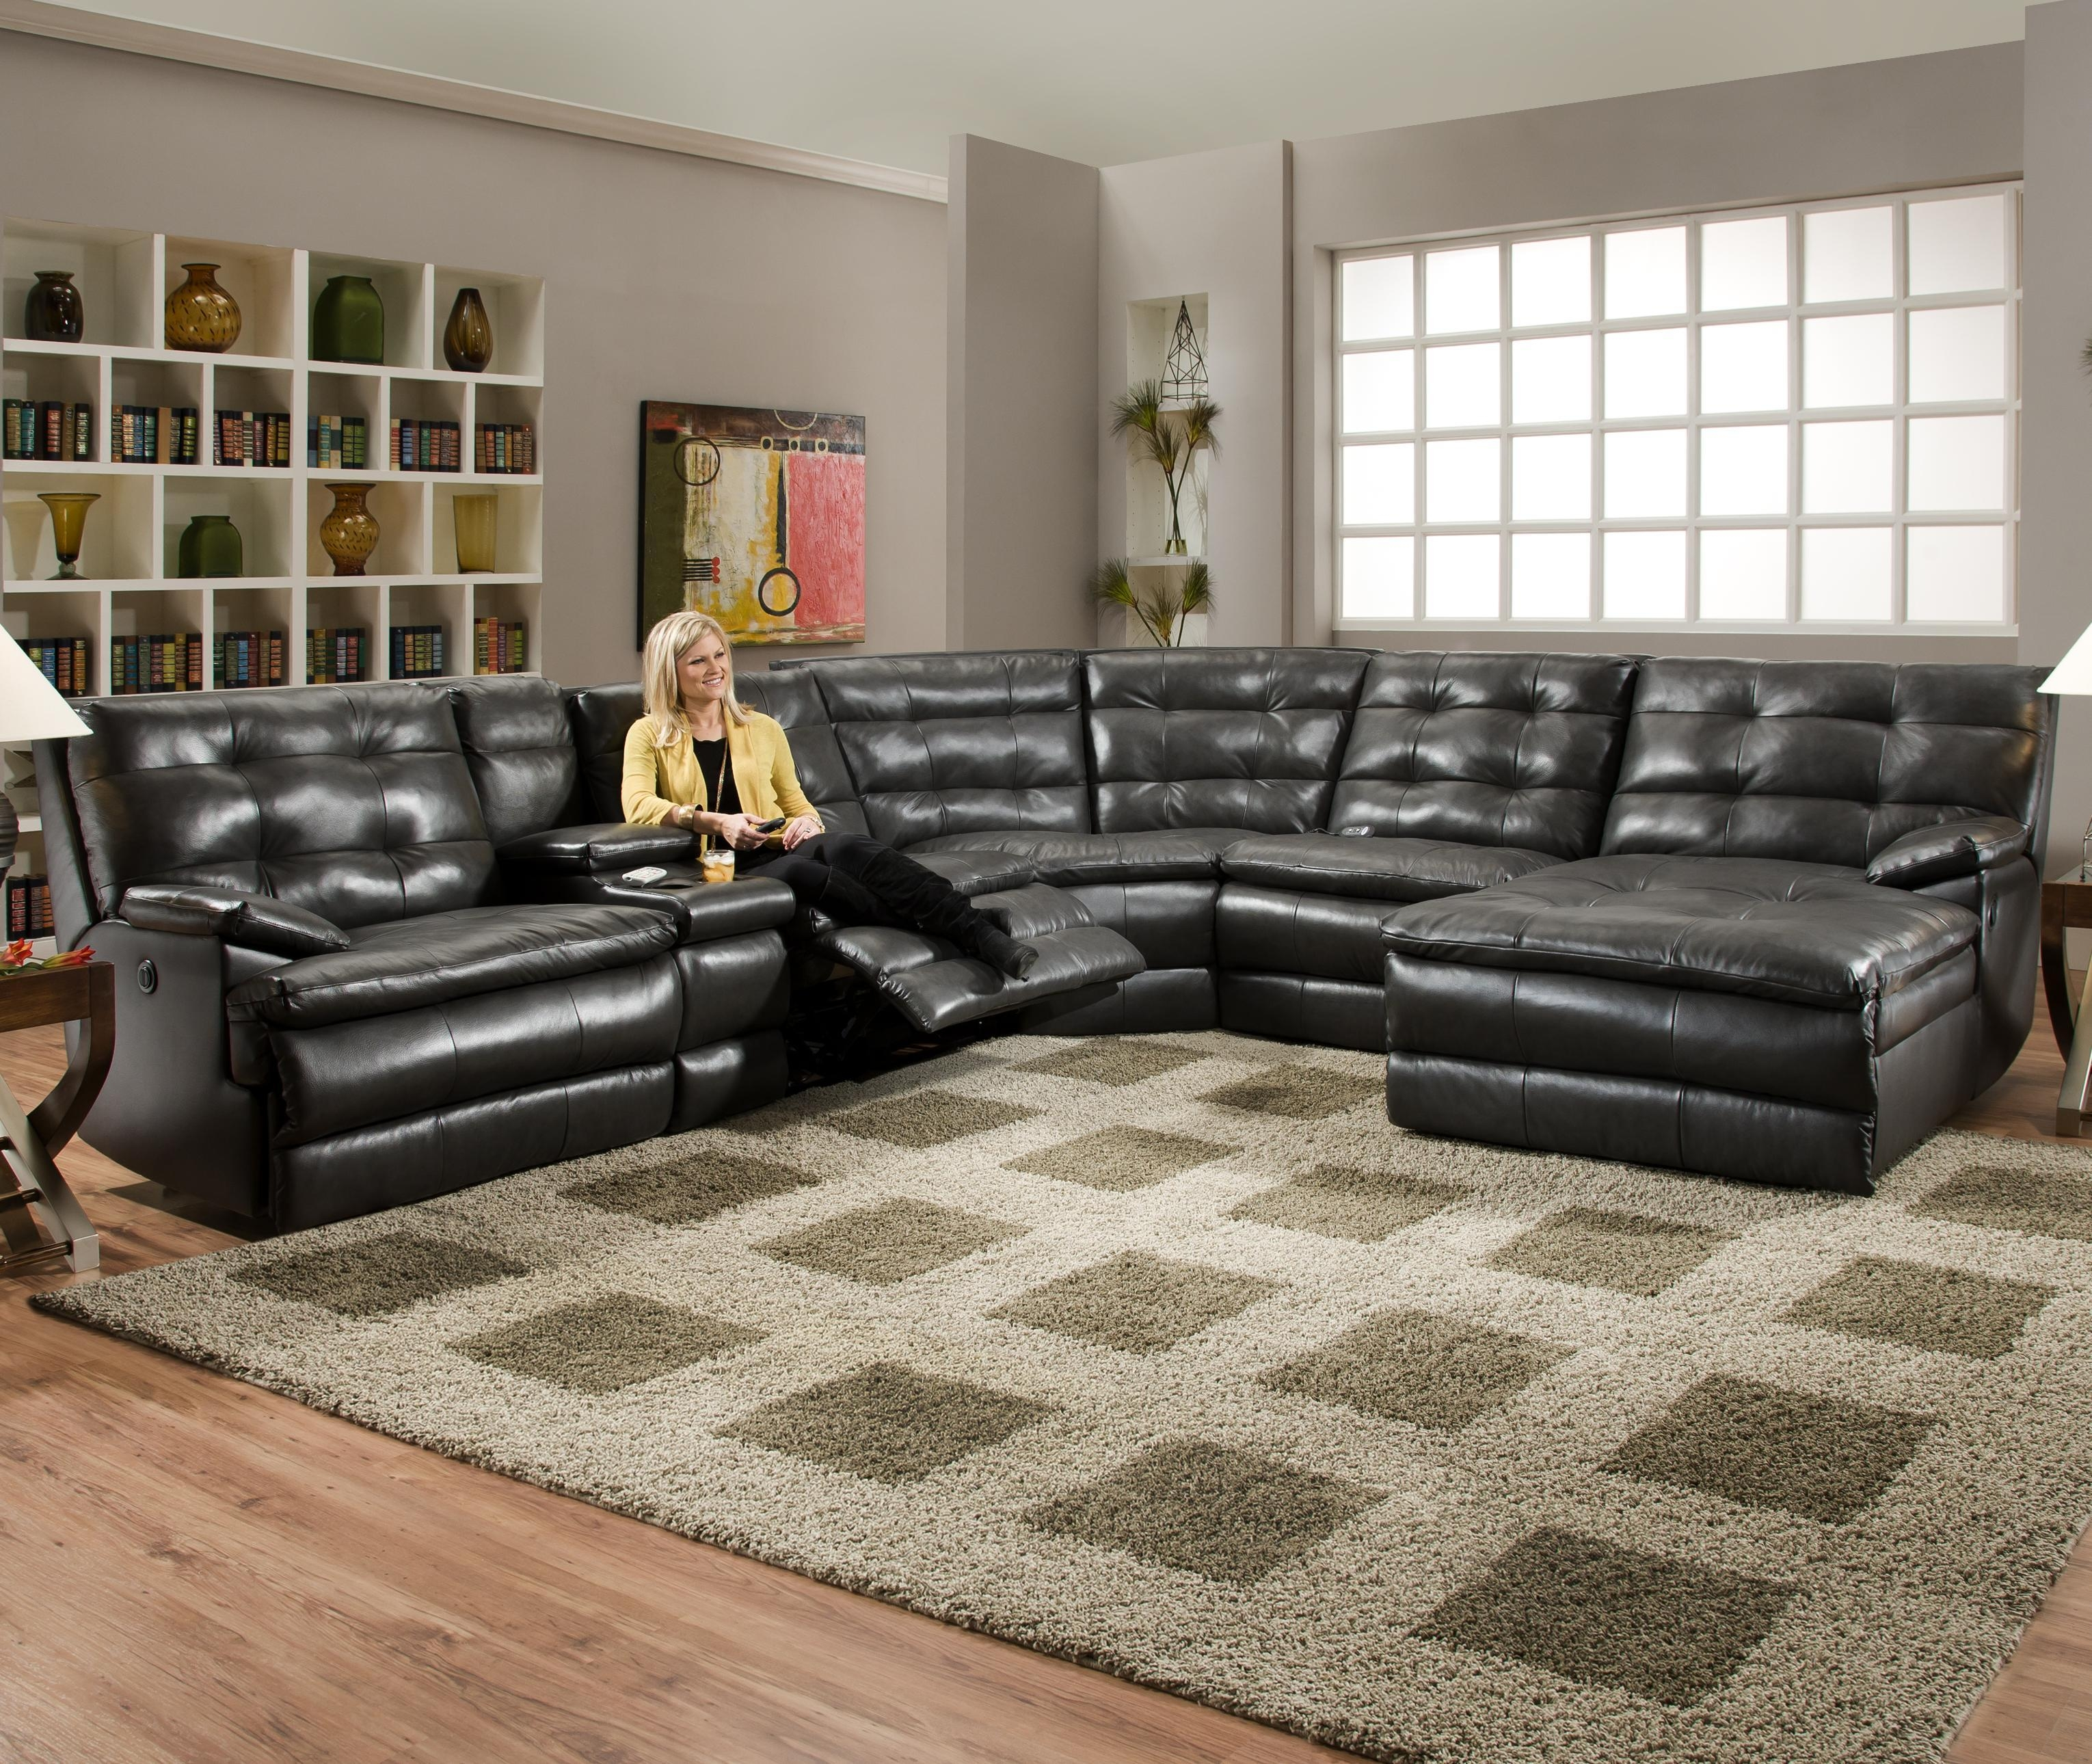 Inspirational Reclinable Sectional Sofas 77 About Remodel The Bay With Regard To The Bay Sofas (Image 3 of 20)